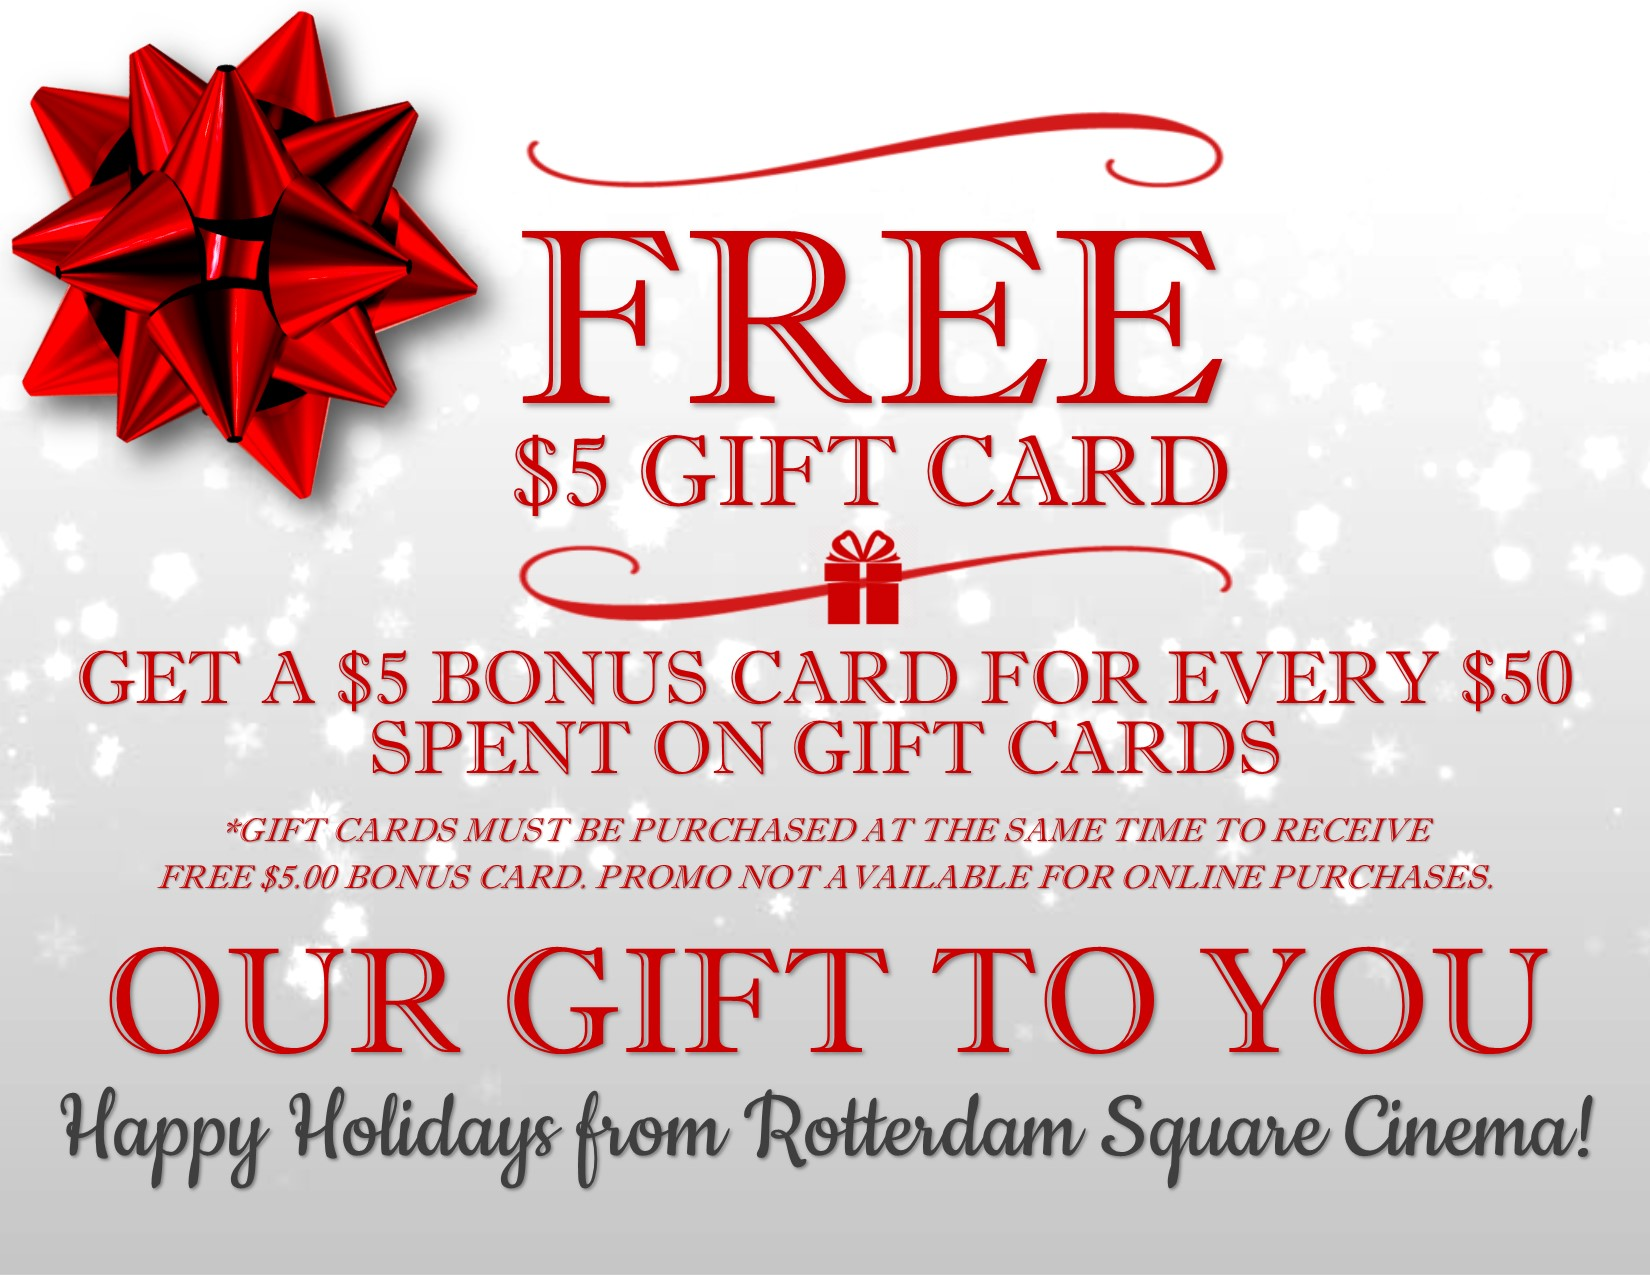 Holiday gift card promotions